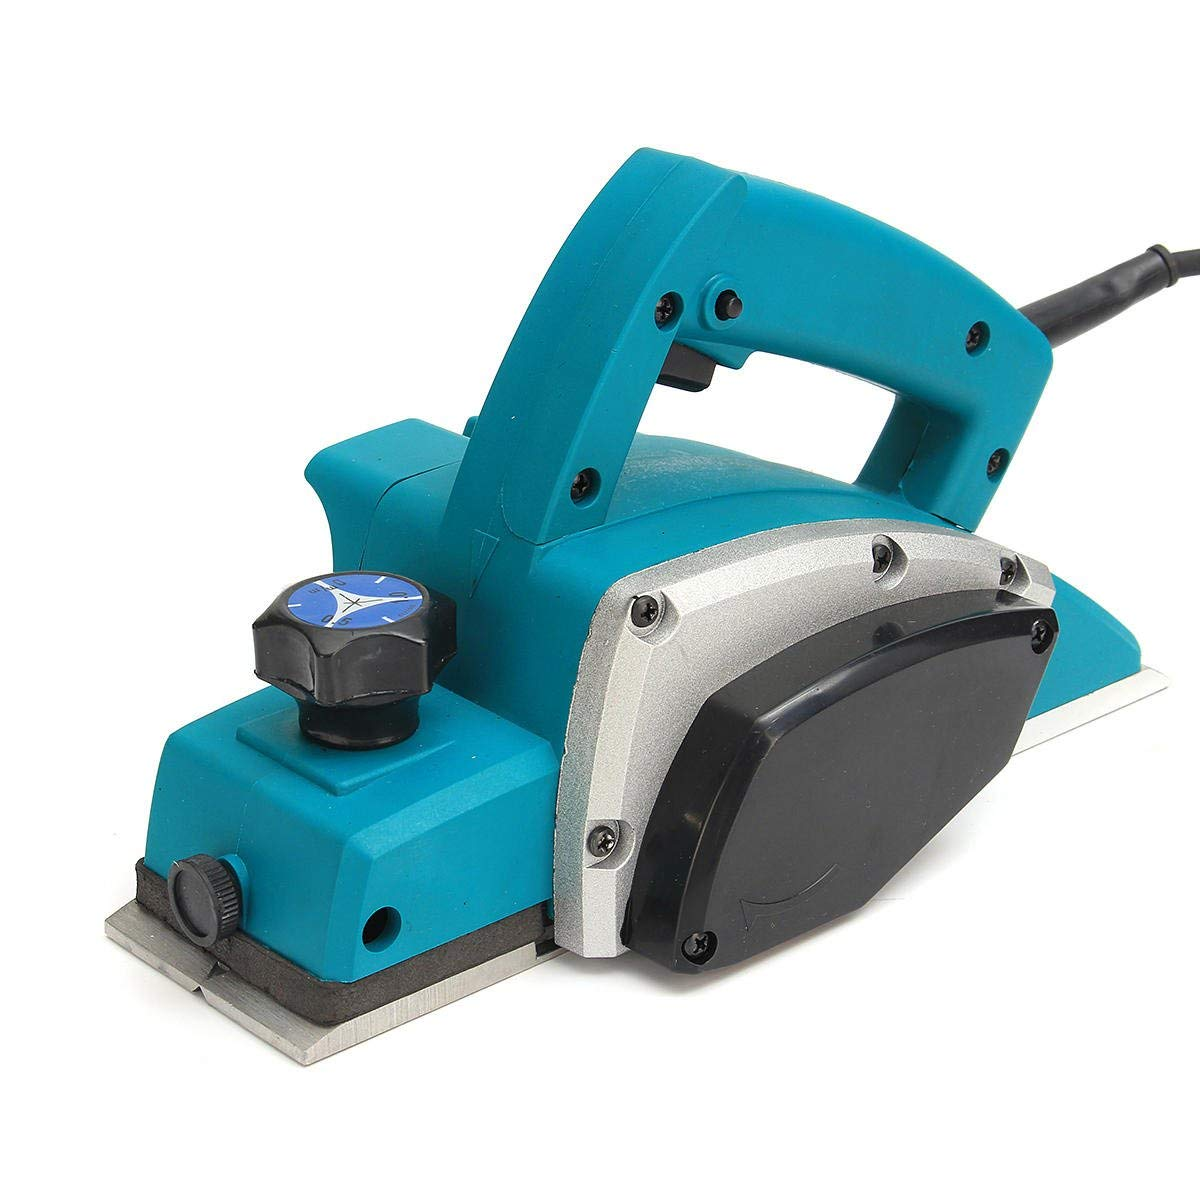 220V 800W Powerful Electric Wood Planer Door Plane Held Woodworking Surface US Plug - Power Tools Other Power Tools